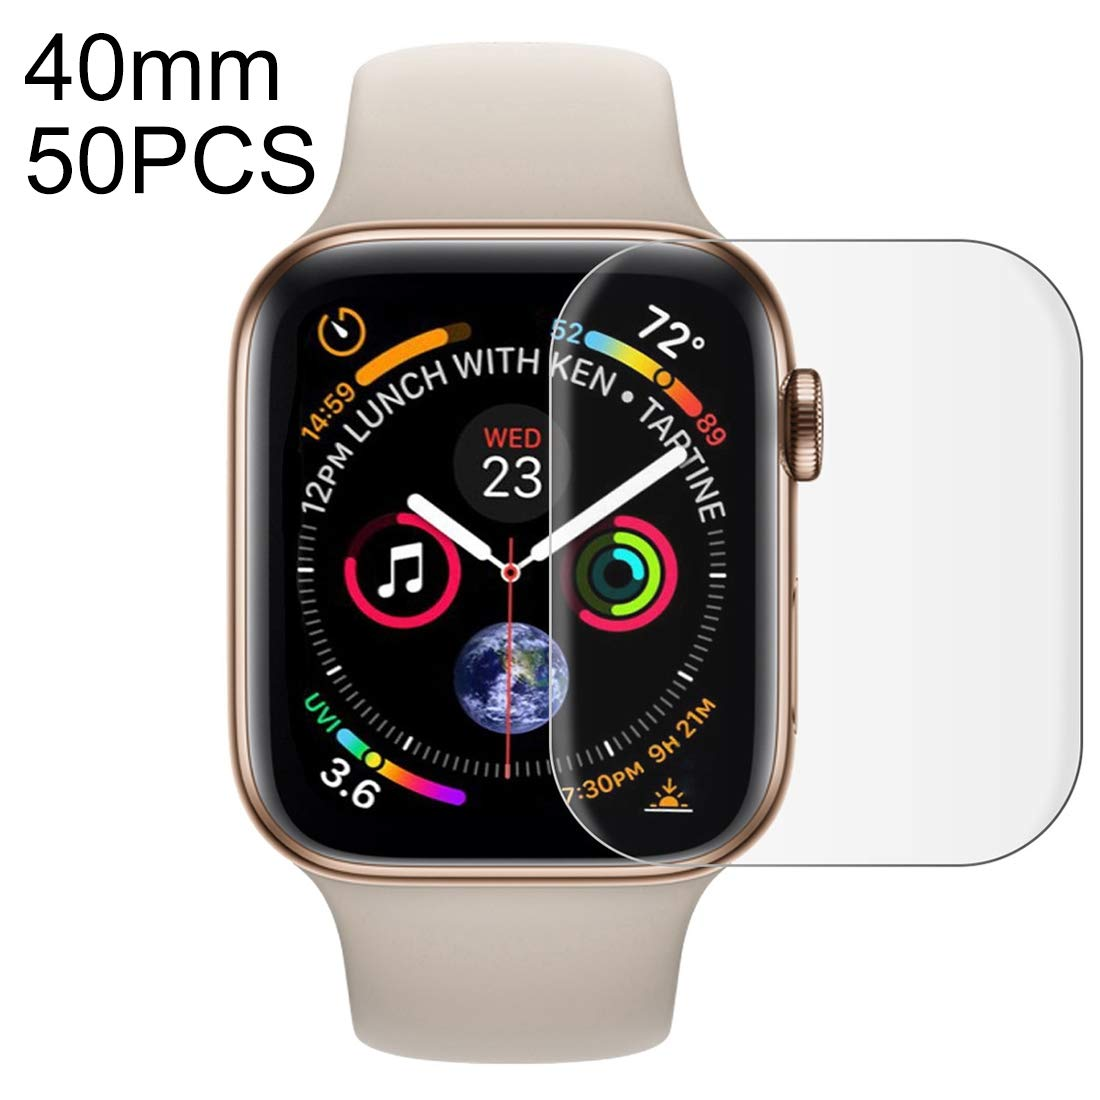 QGTSCREENPROTECTOR 50 PCS for Apple Watch Series 5 & 4 40mm Soft PET Film Full Cover Screen Protector (Color : Transparent) by QGTSCREENPROTECTOR